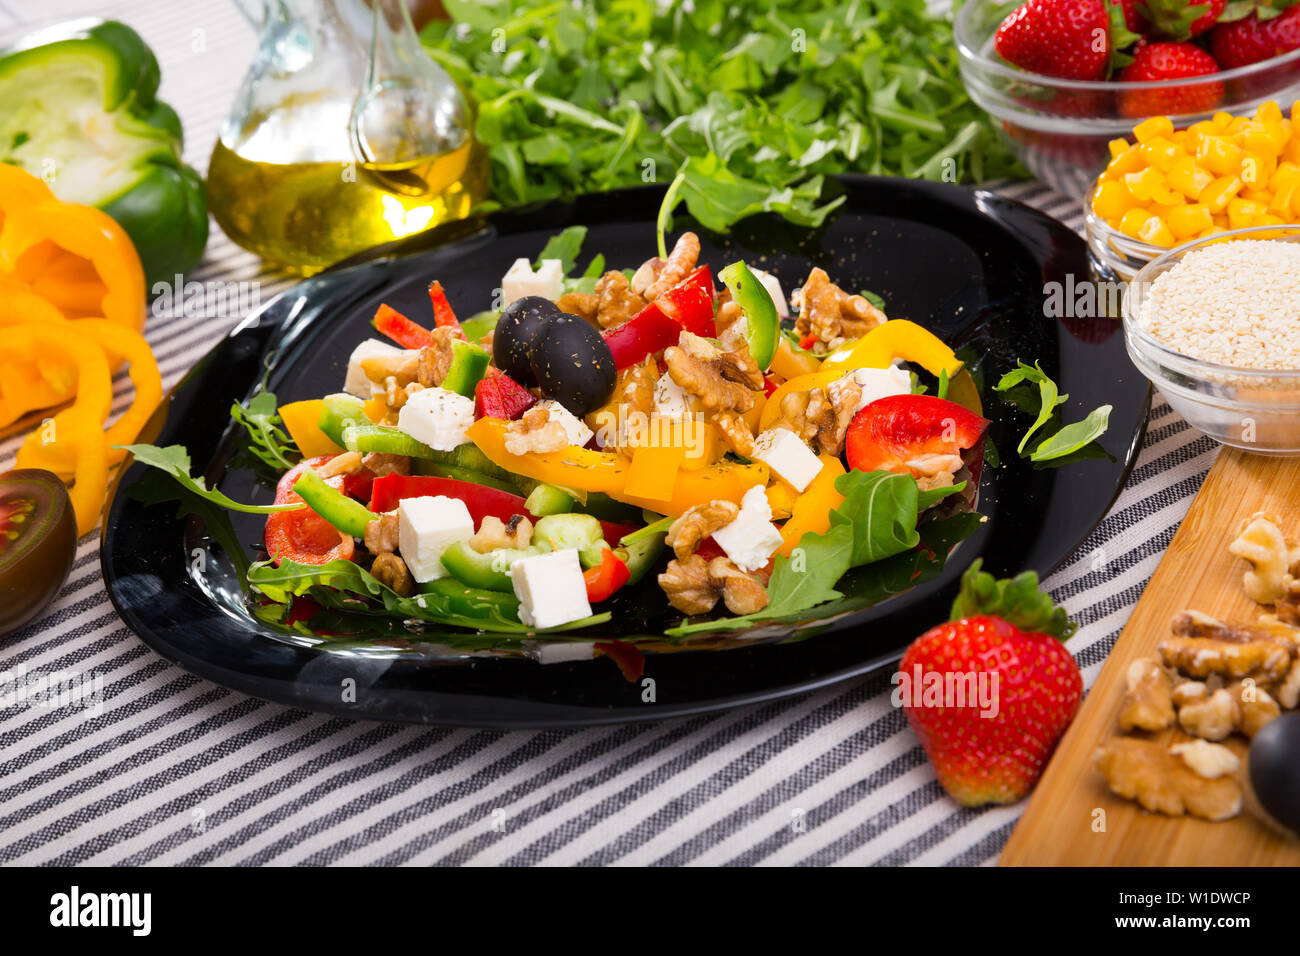 Plate with ready-made salad and its ingredients for recipe in restaurante. Stock Photo